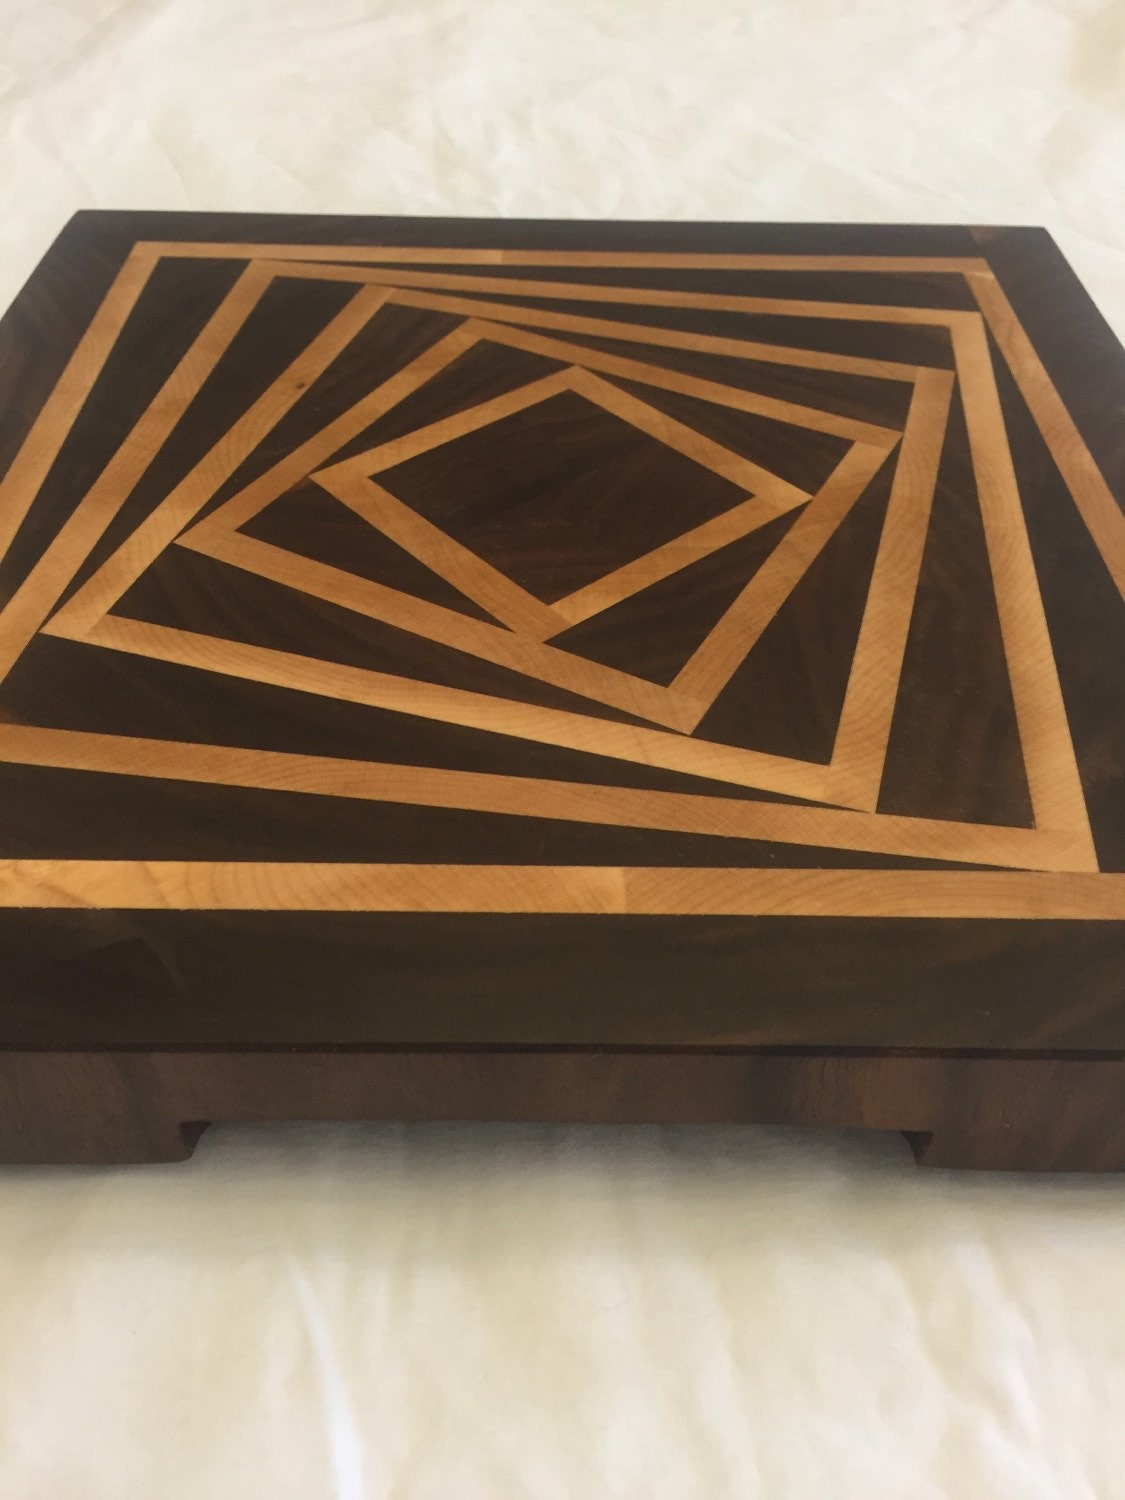 Wood End Grain Cutting Board And Serving Tray Made Of Hardwood